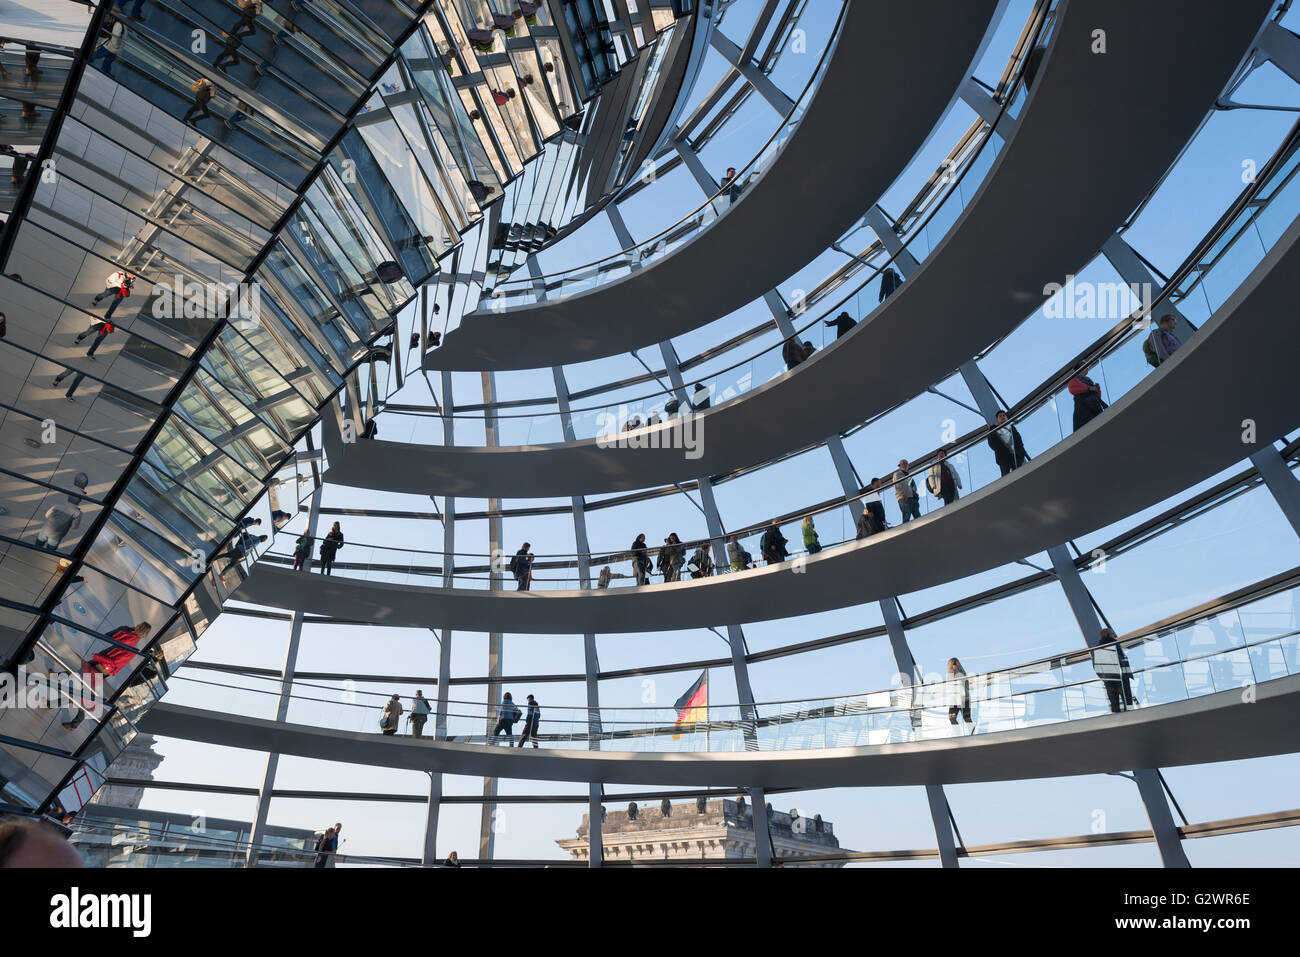 27.10.2015, Berlin, Berlin, Germany - The glass dome on the Reichstag building, the seat of the German Bundestag. Visitors to the spiral leading upward rise, other visitors are reflected in the Mittelsaeule the Reichstag dome. The architect of mordernen dome is Sir Norman Foster. 0JL151027D081CAROEX.JPG - NOT for SALE in G E R M A N Y, A U S T R I A, S W I T Z E R L A N D [MODEL RELEASE: NO, PROPERTY RELEASE: NO, (c) caro photo agency / Lederbogen, http://www.caro-images.com, info@carofoto.pl - Any use of this picture is subject to royalty!] Stock Photo